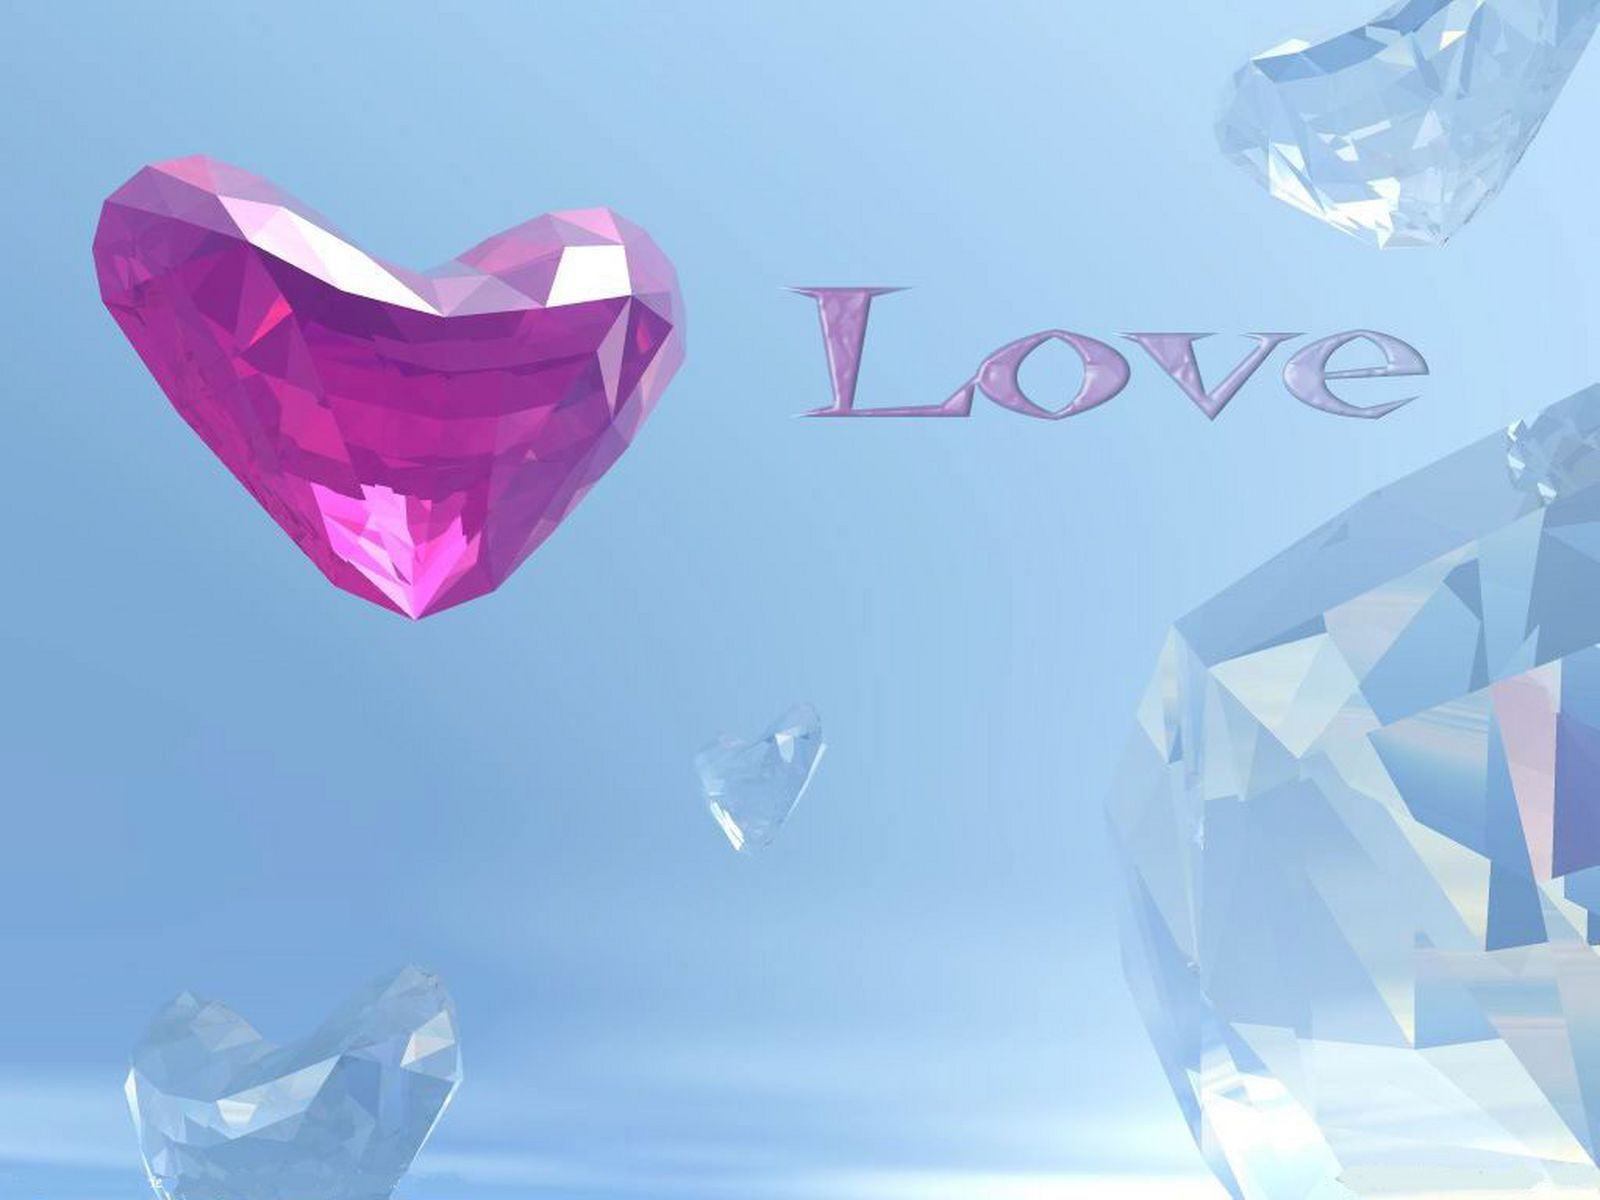 Love Wallpaper Picture : Love Wallpapers Hot Picures: Love Wallpaper Backgrounds